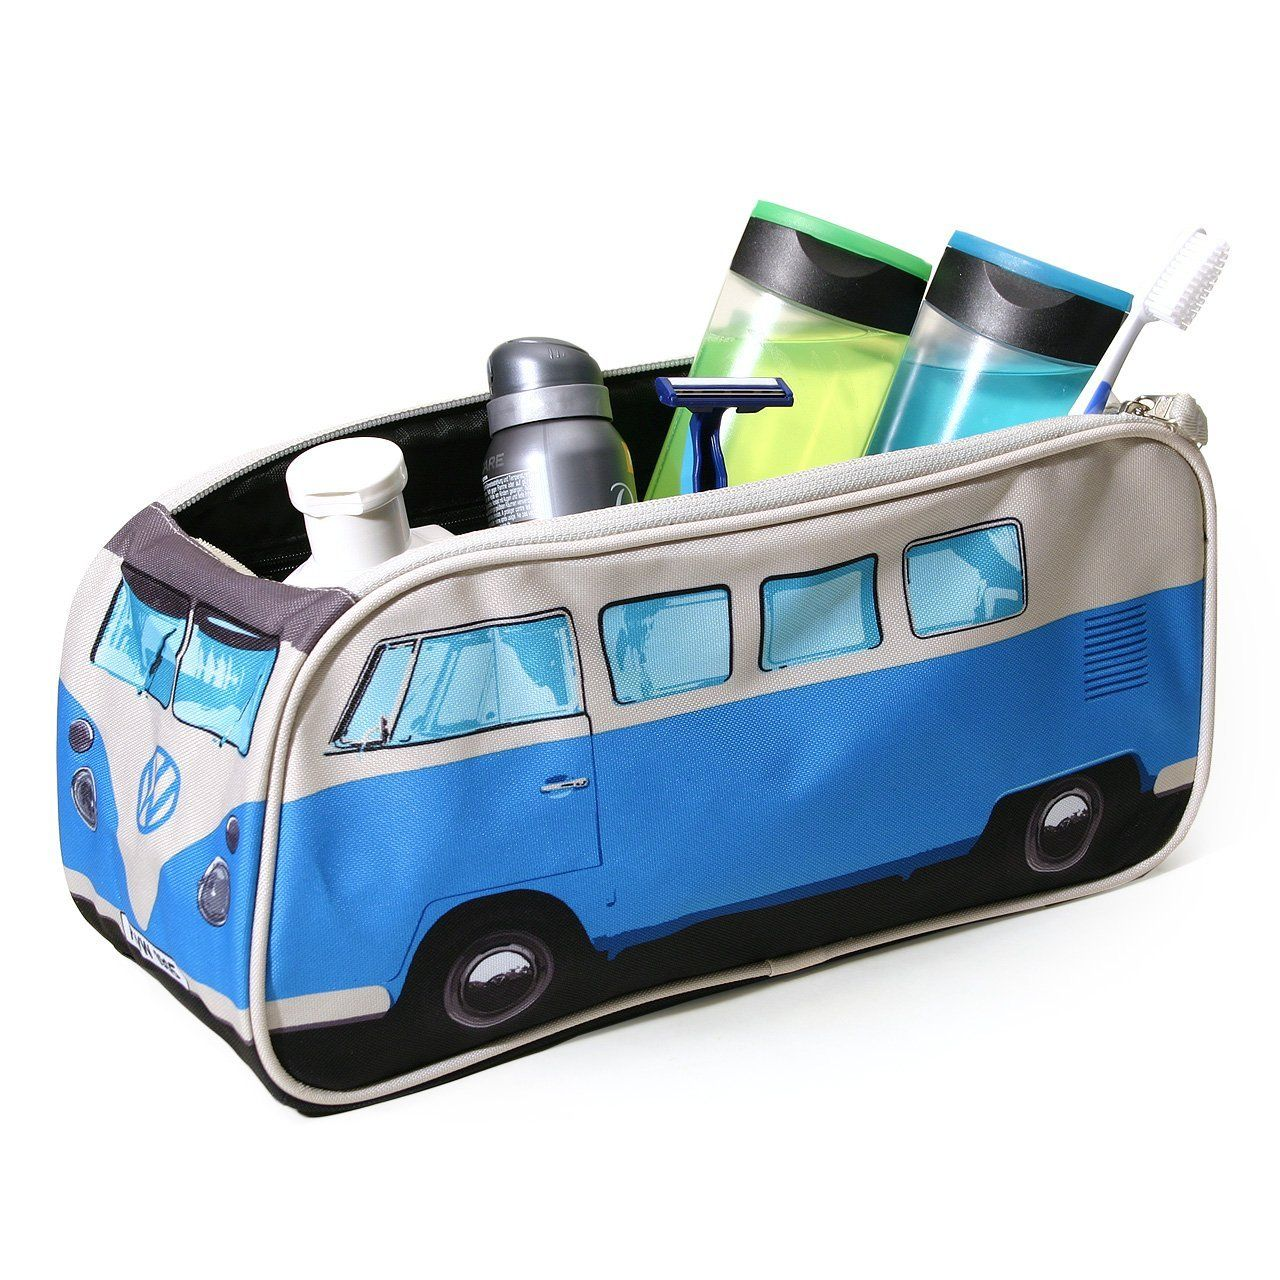 kulturtasche vw bus bulli t1 in blau vw bulli vw bus. Black Bedroom Furniture Sets. Home Design Ideas